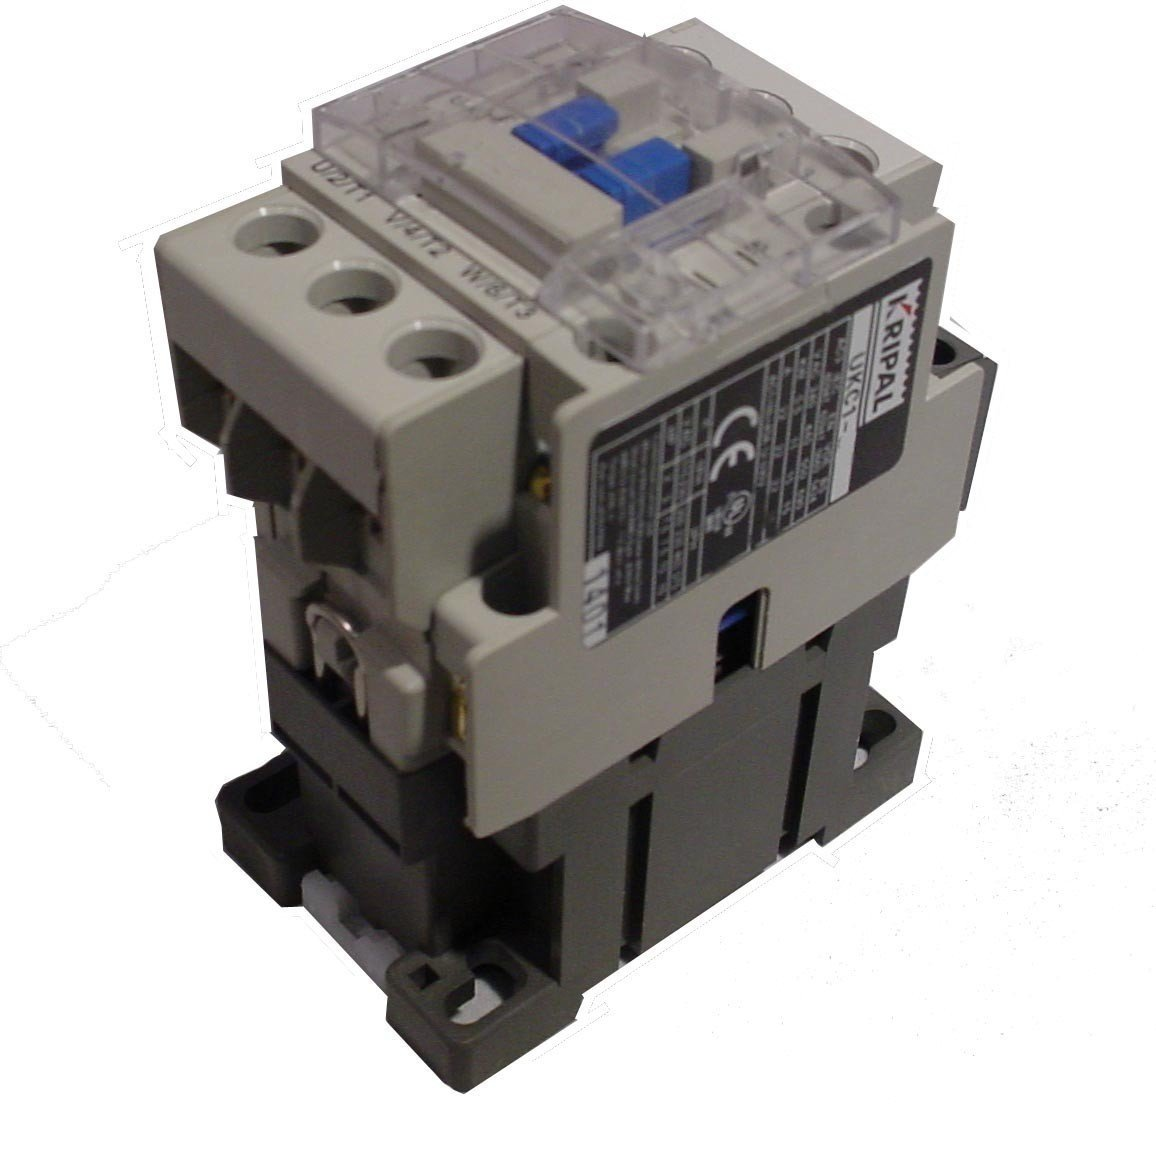 Kripal Yagi Ukc1 18 Contactor Amp 15 Hp 3 Pole Relay 24 120 208 Nema Phase Wiring 240 277 480v Coil Available New Industrial Scientific